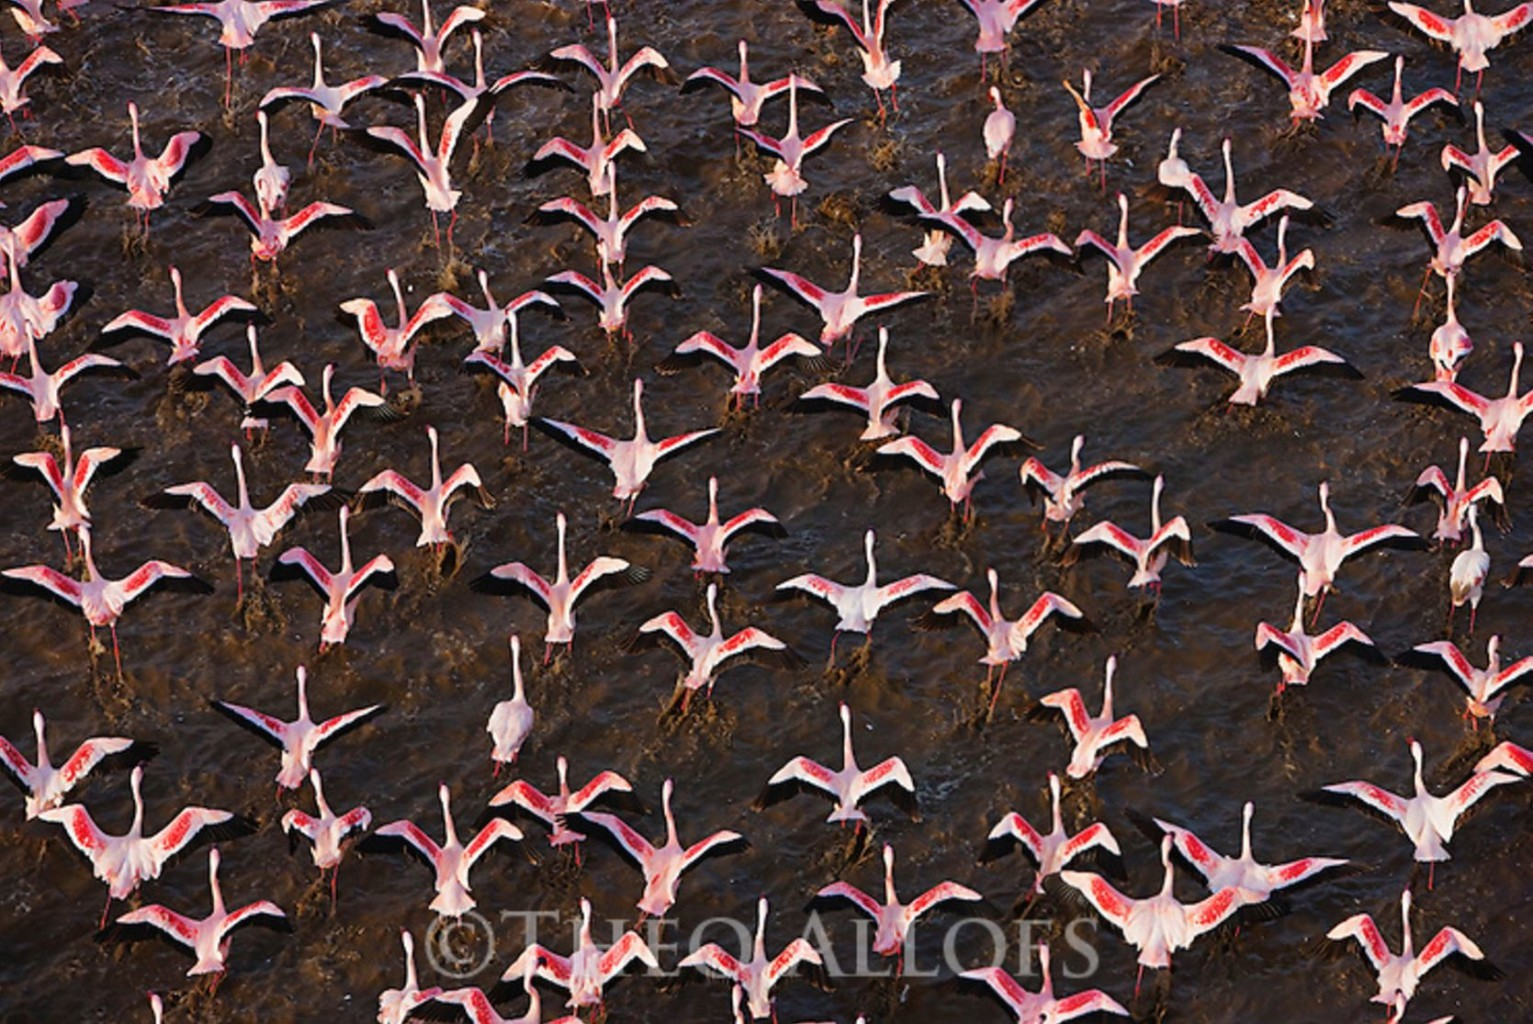 Image: Flamingos taking flight over a lake